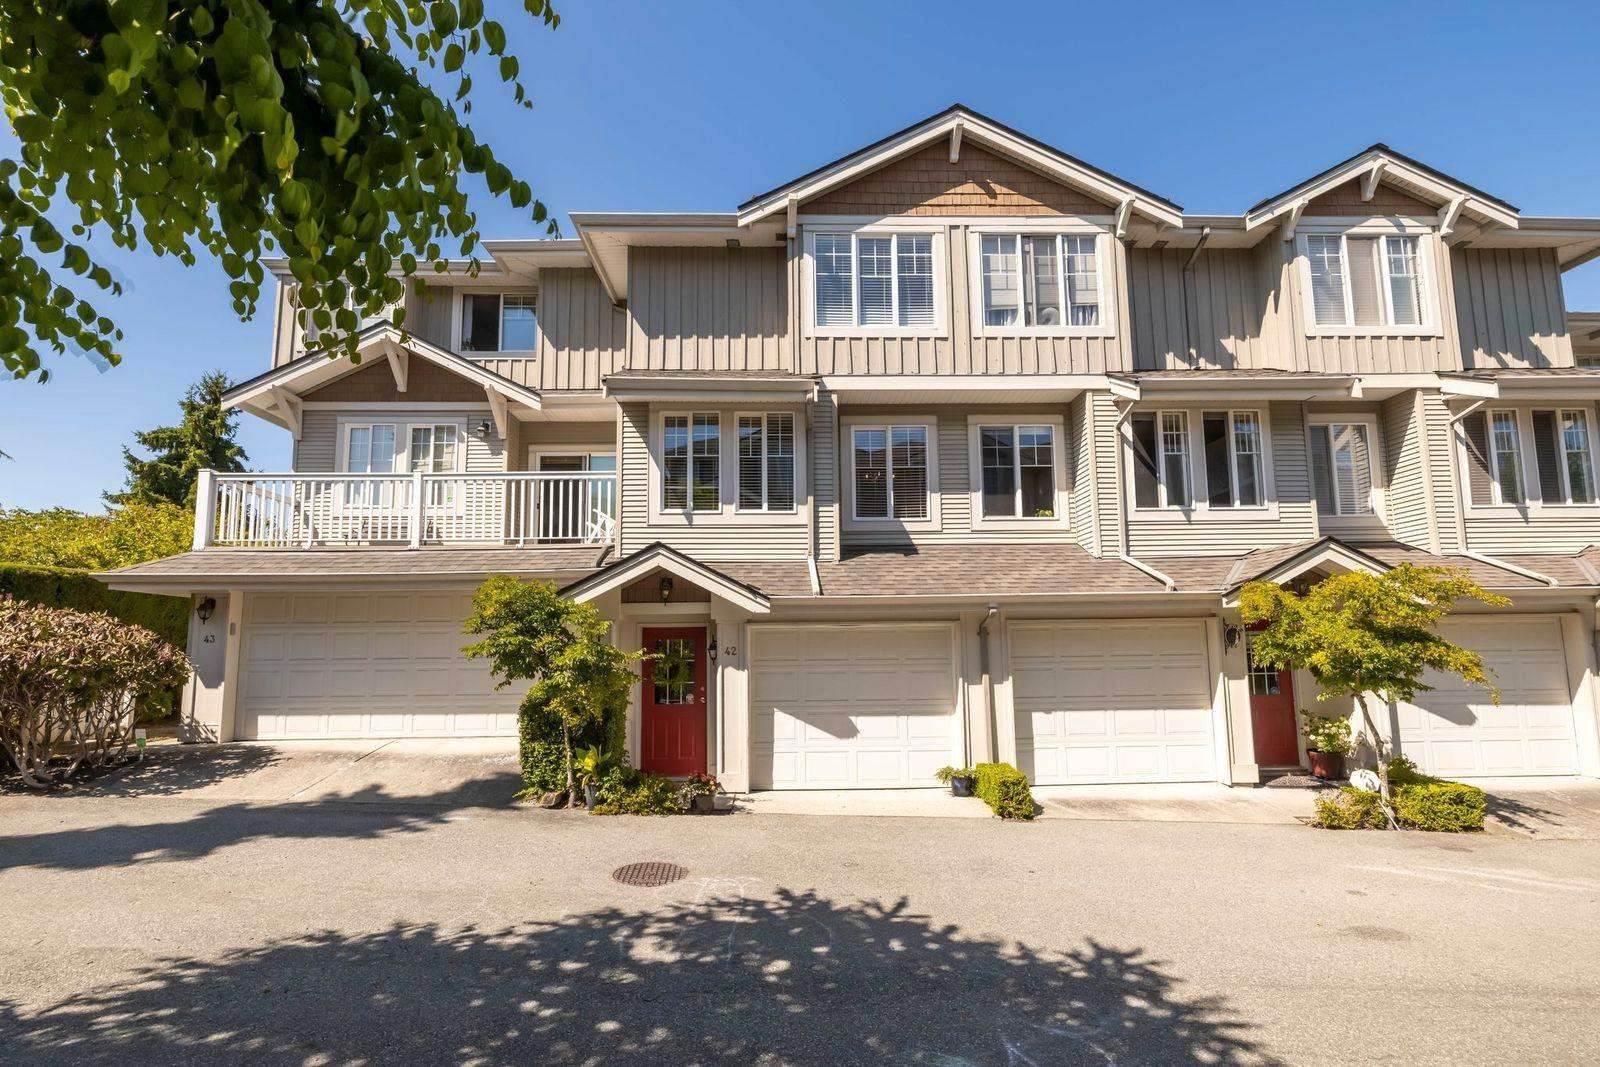 """Main Photo: 42 14877 58 Avenue in Surrey: Sullivan Station Townhouse for sale in """"REDMILL"""" : MLS®# R2603819"""